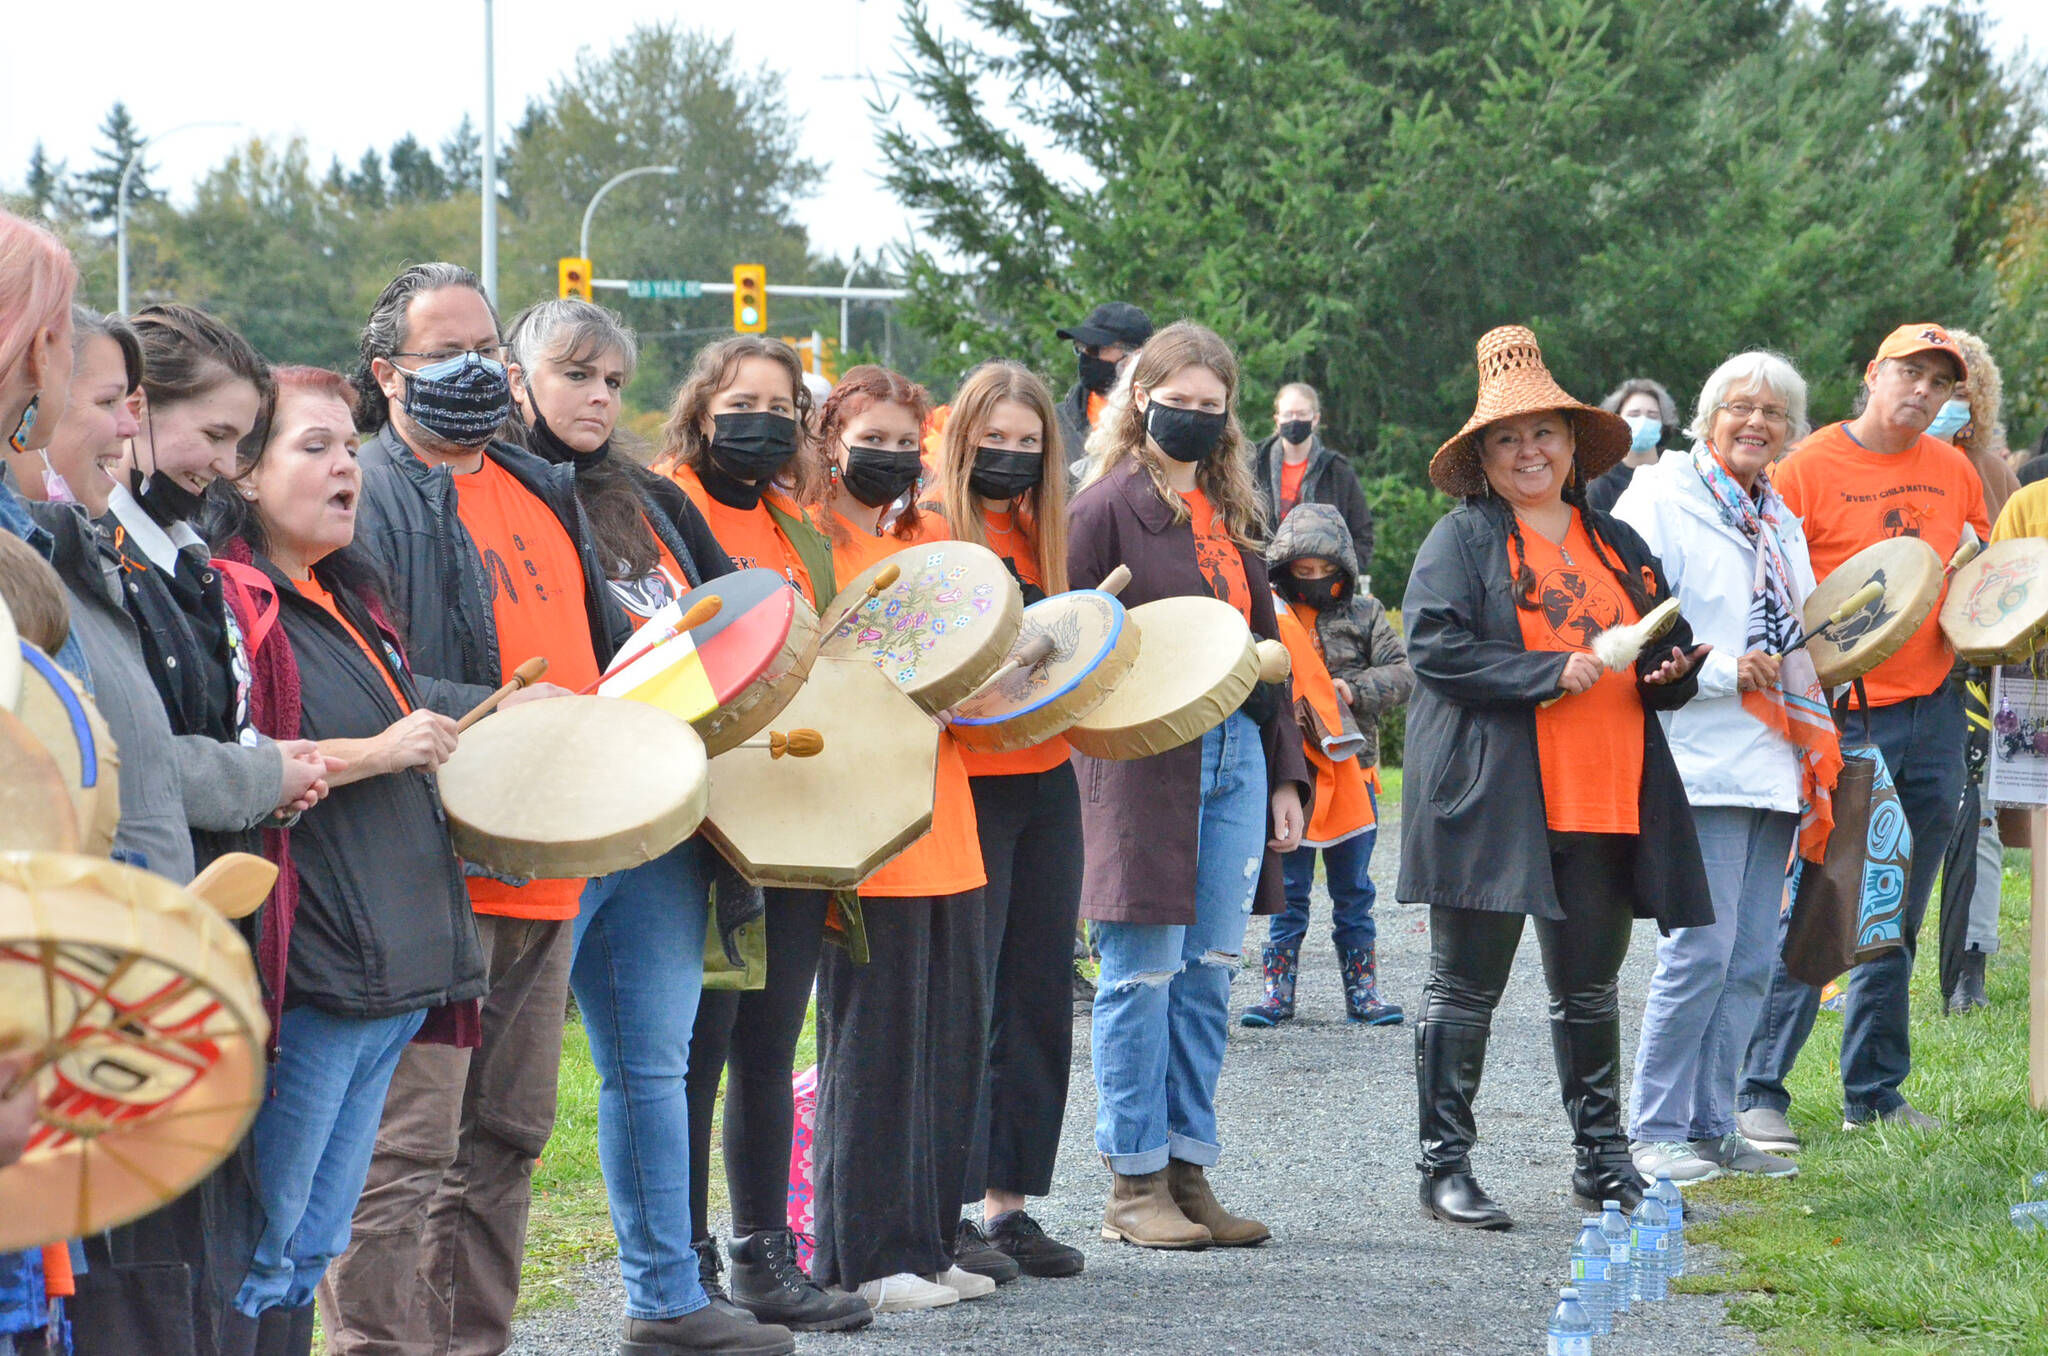 Drummers were invited to gather on the afternoon of Thursday, Sept. 30 as part of a local event to honour the National Day of Truth and Reconciliation in Langley. (Heather Colpitts/Langley Advance Times)